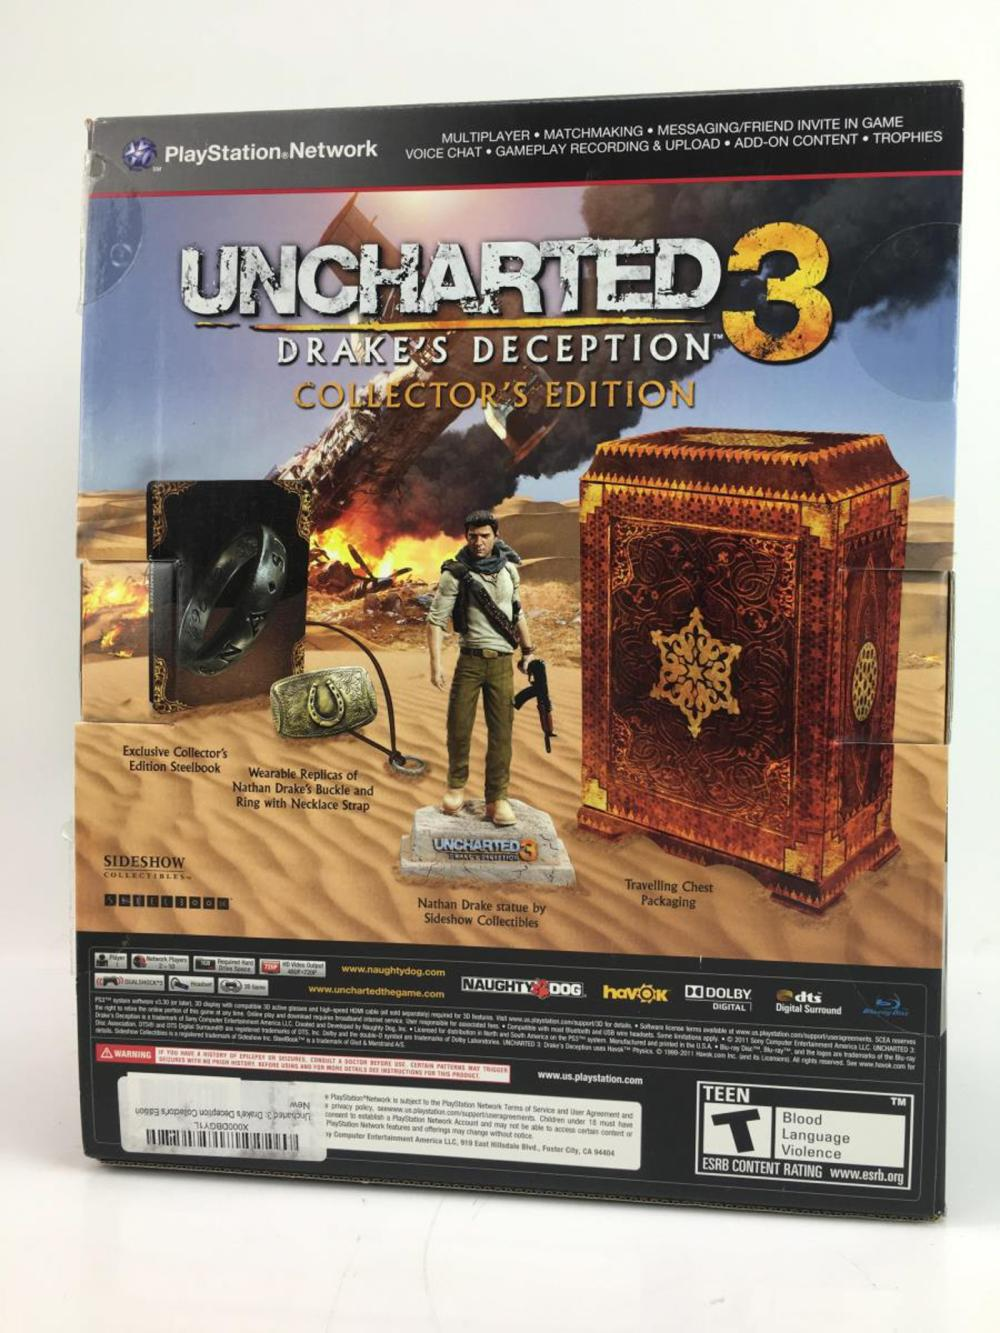 Ps3 Uncharted 3 Collector S Edition Box Set